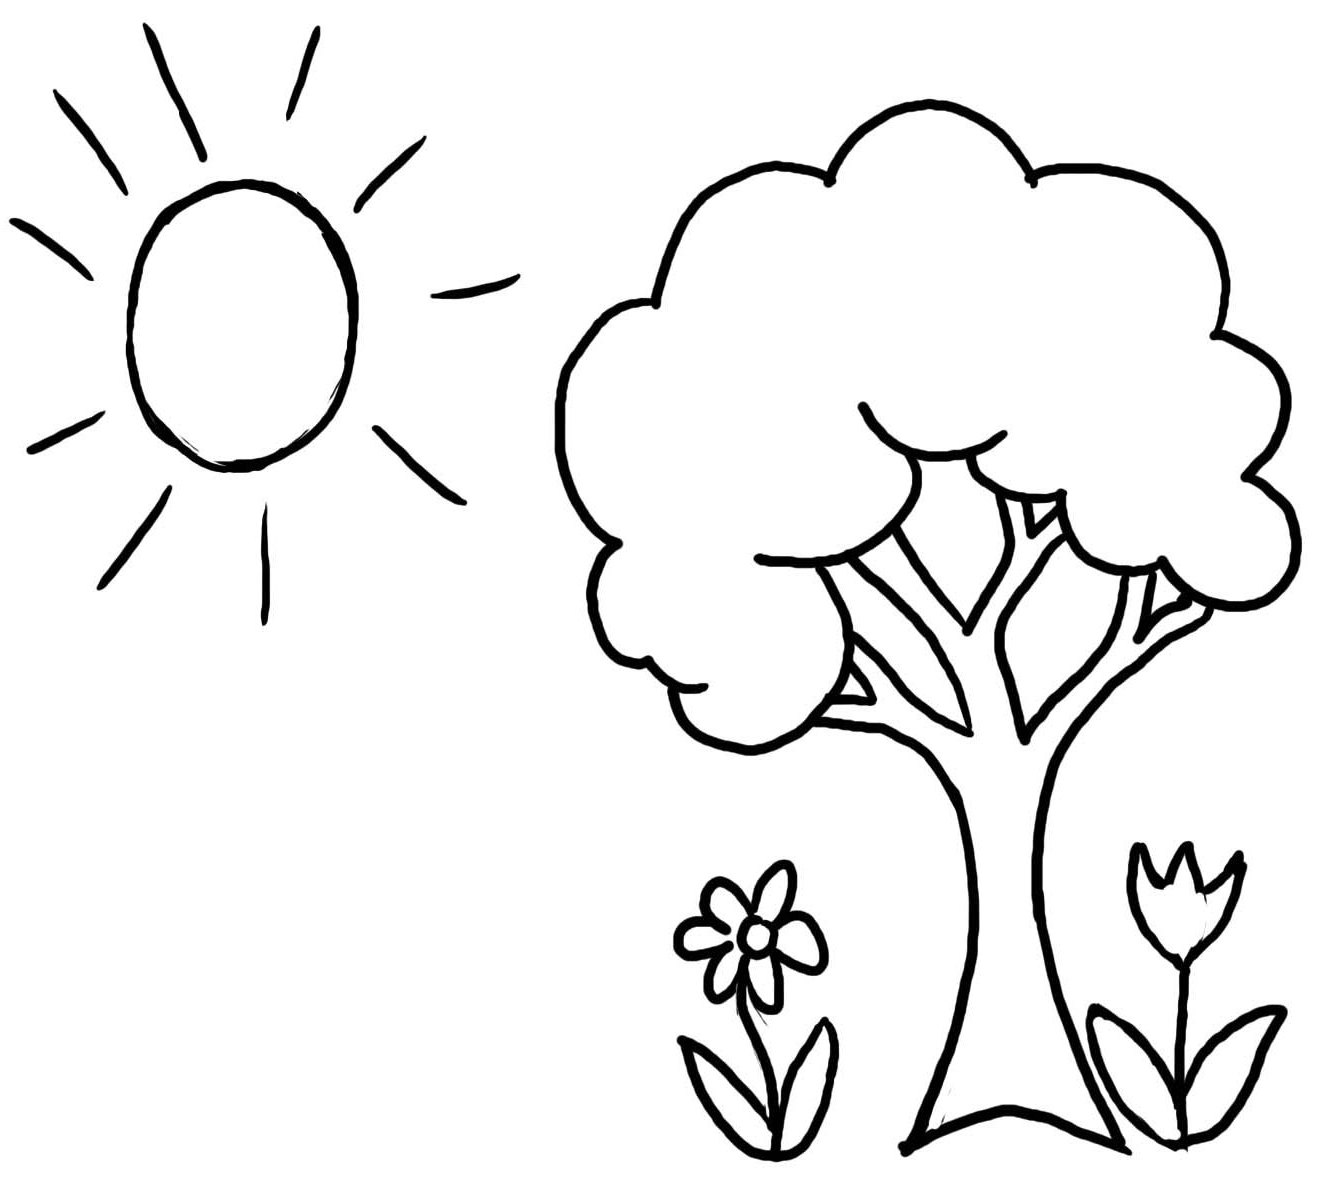 coloring trees tree coloring pages free printable online tree coloring trees coloring